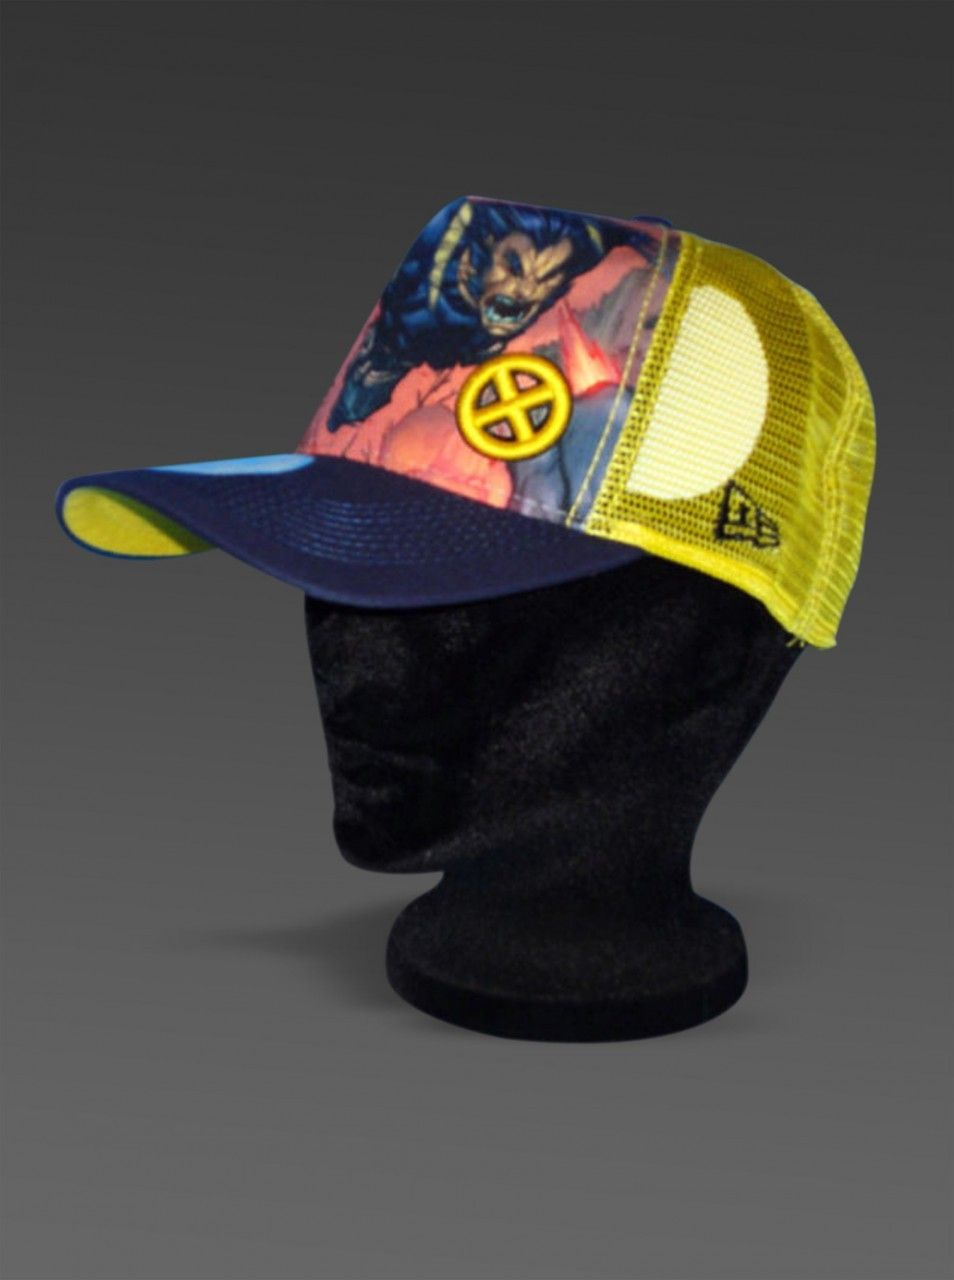 f87418b167d HeroWiz.com - New Era Adjustable Hat ULTIMATE WOLVERINE X-Men Marvel Comics  Trucker